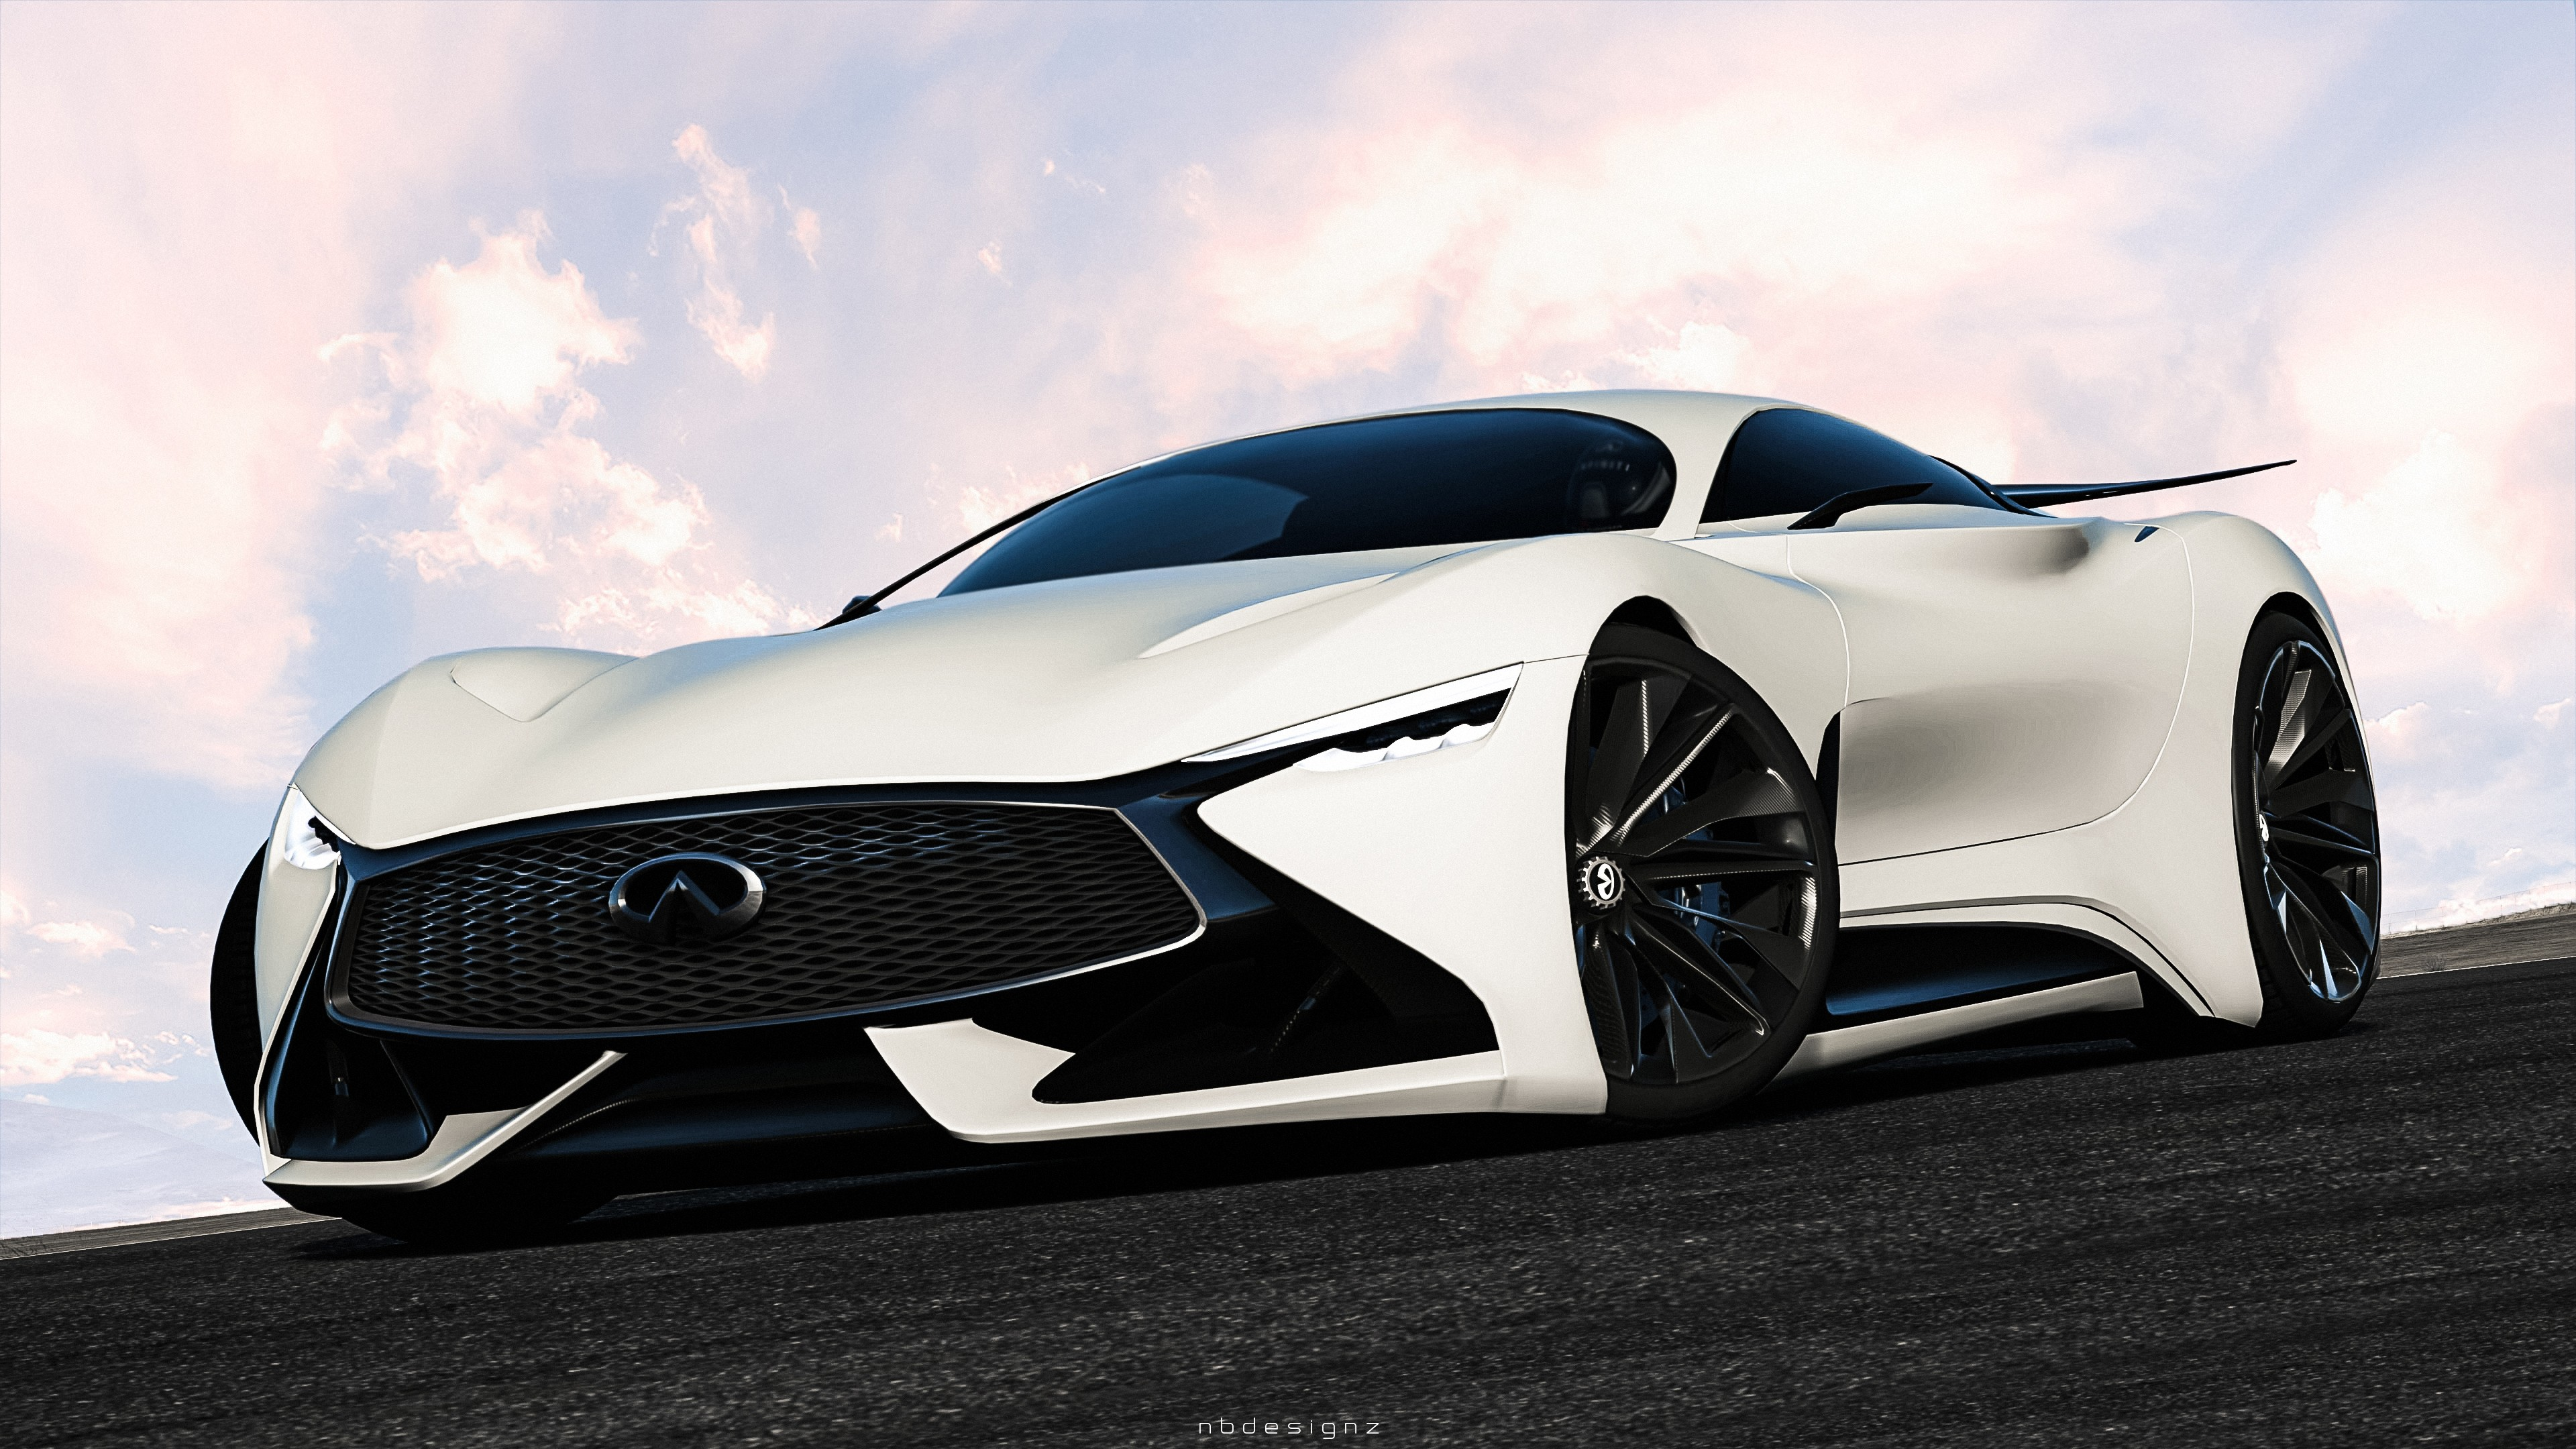 Infiniti vision gt concept gran turismo 6 wallpaper hd - Wallpaper hd 4k car ...